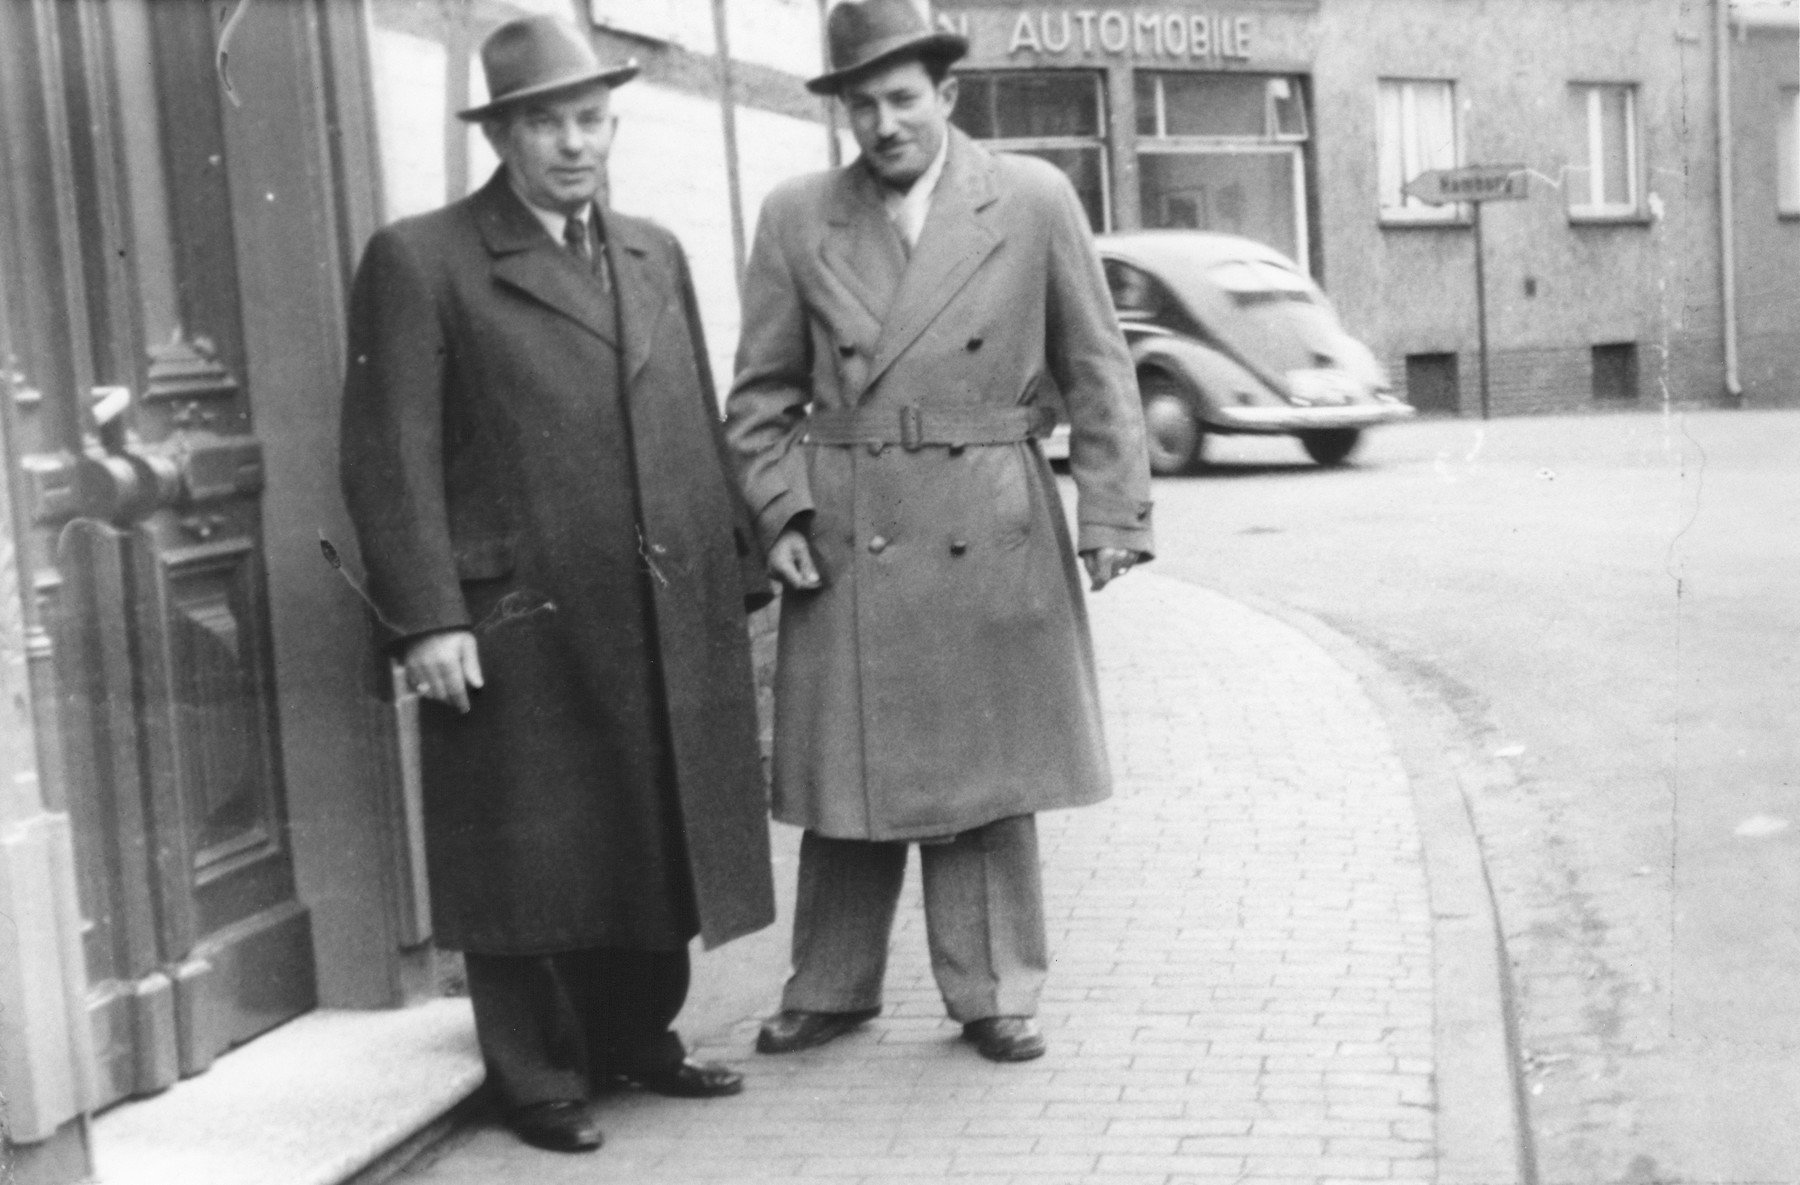 Two Jewish DPs from Oswiecim, Poland pose on a street in Celle, Germany.  Pictured are Natan Akiwa Silberger (left) and his son, Szmuel Aron (right).